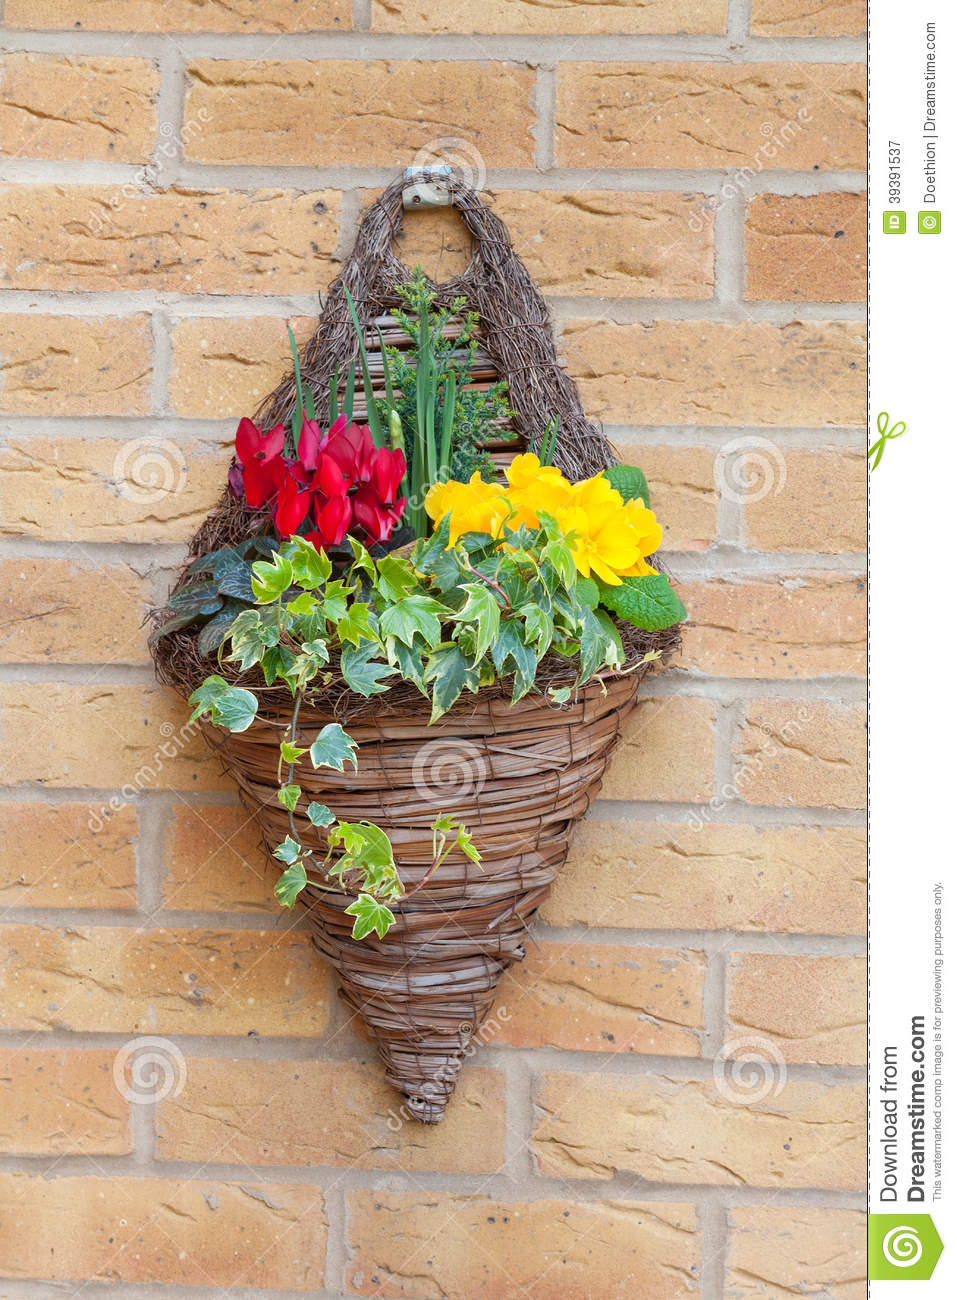 Wall Mount Flower Basket : Wall mounted hanging basket with spring flowers stock